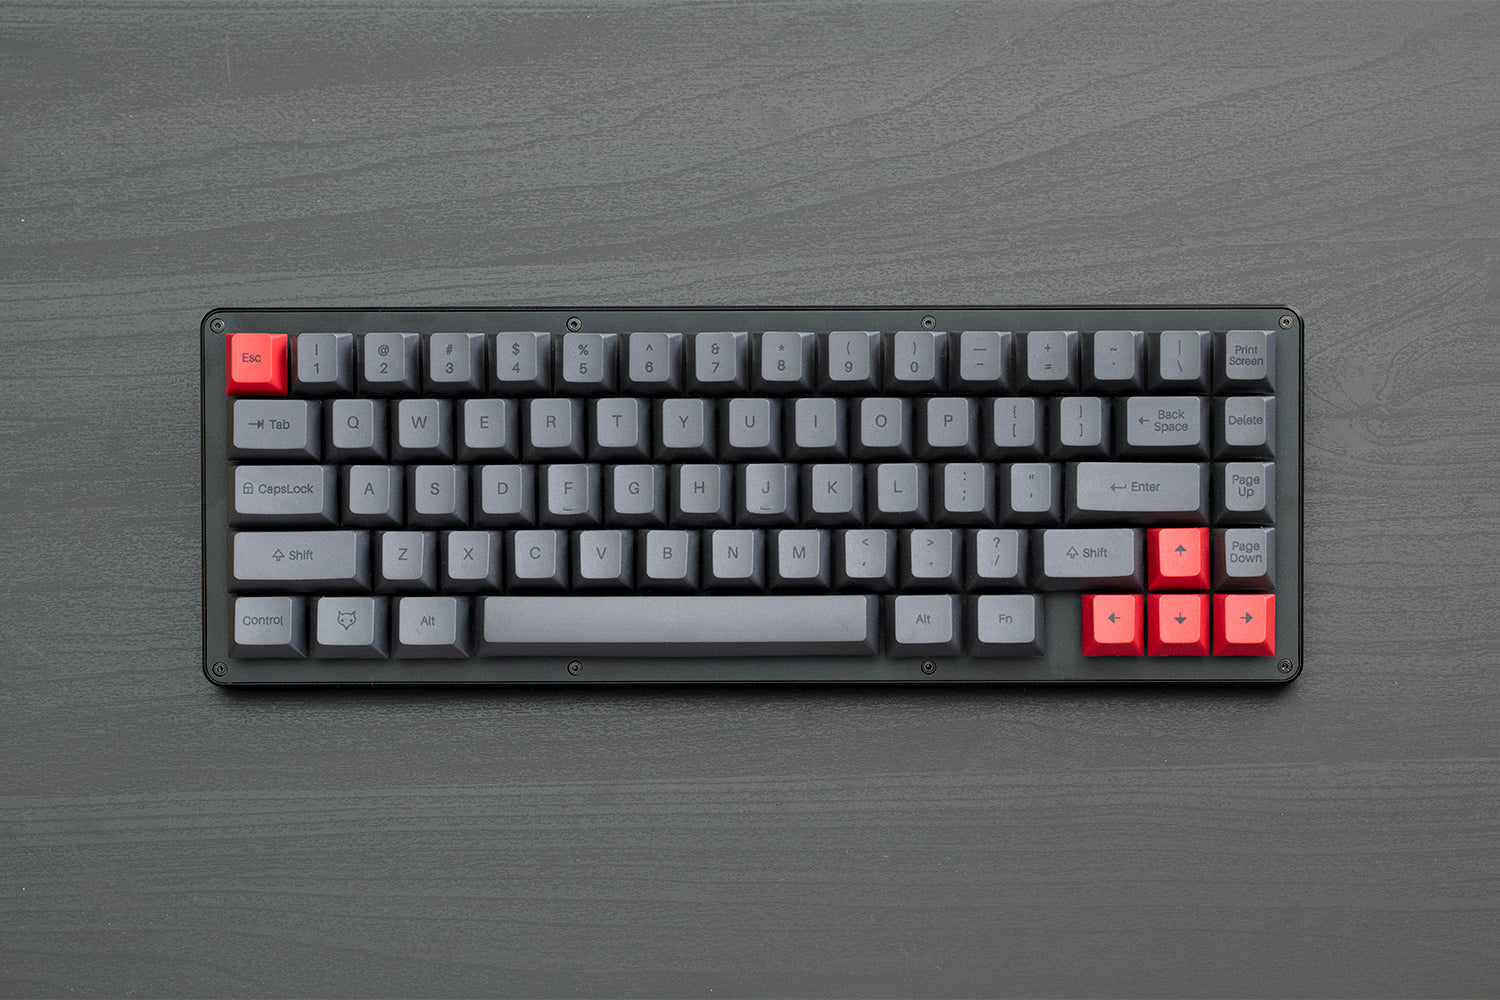 NightFox Mechanical Keyboard